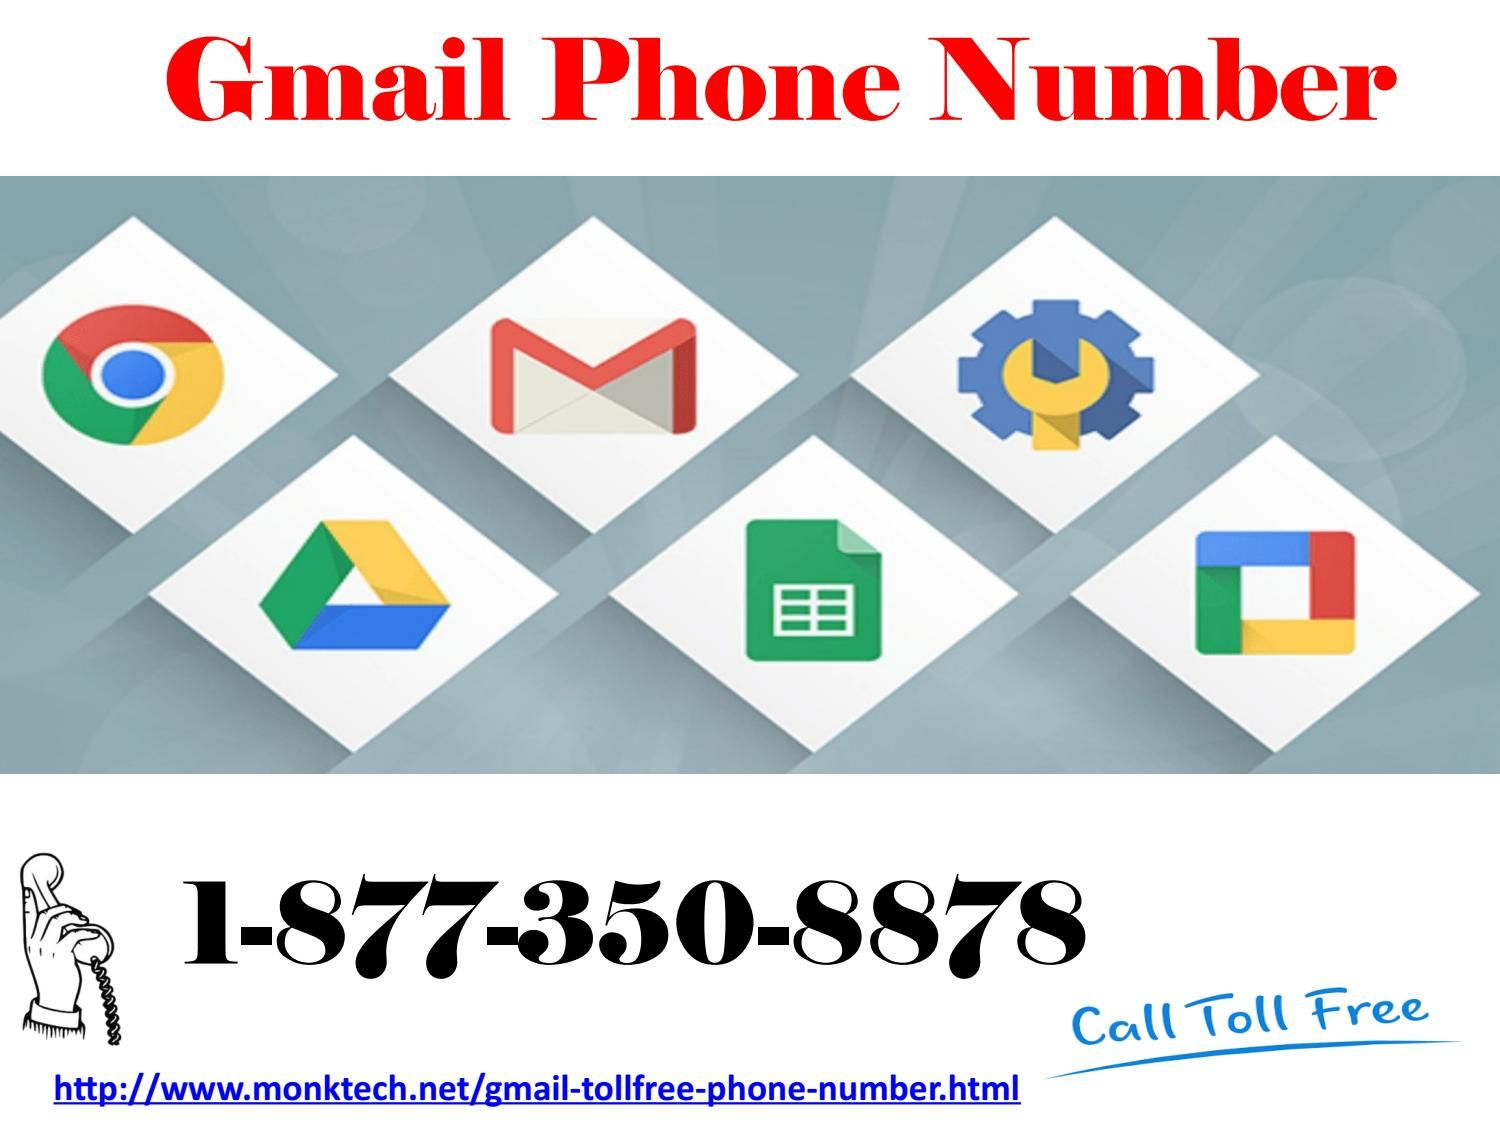 Enjoy Reliable Services Of Ours Via Gmail Phone Number 1